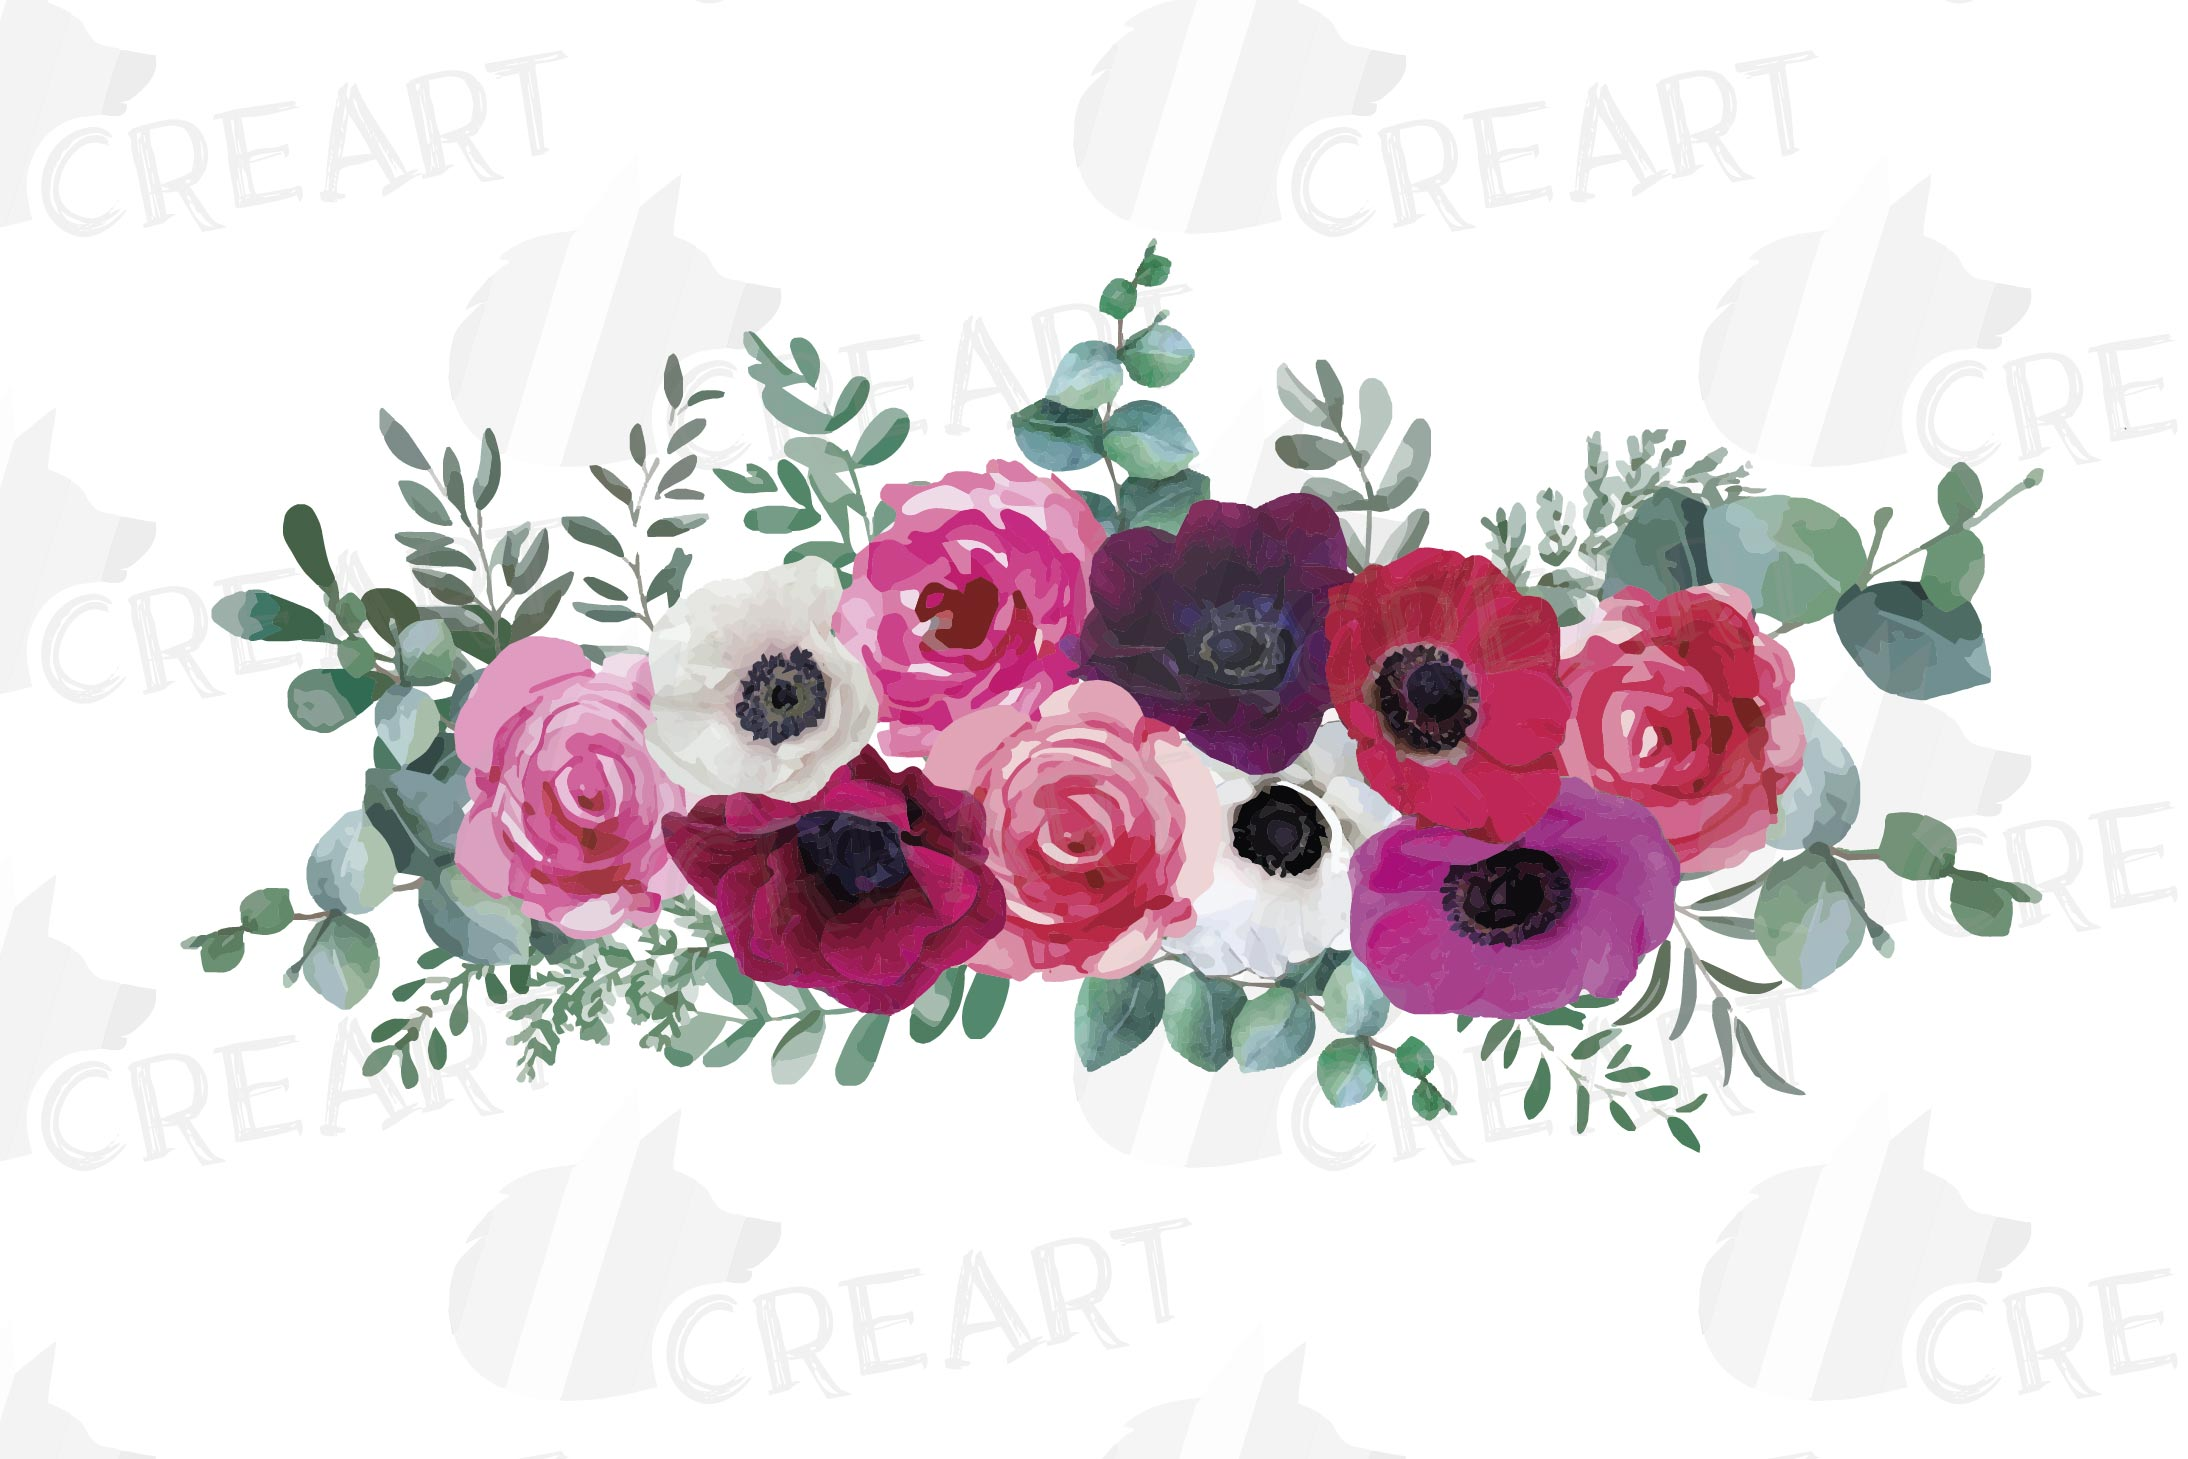 Watercolor elegant floral bouquets 2, rose, anemone decor example image 4